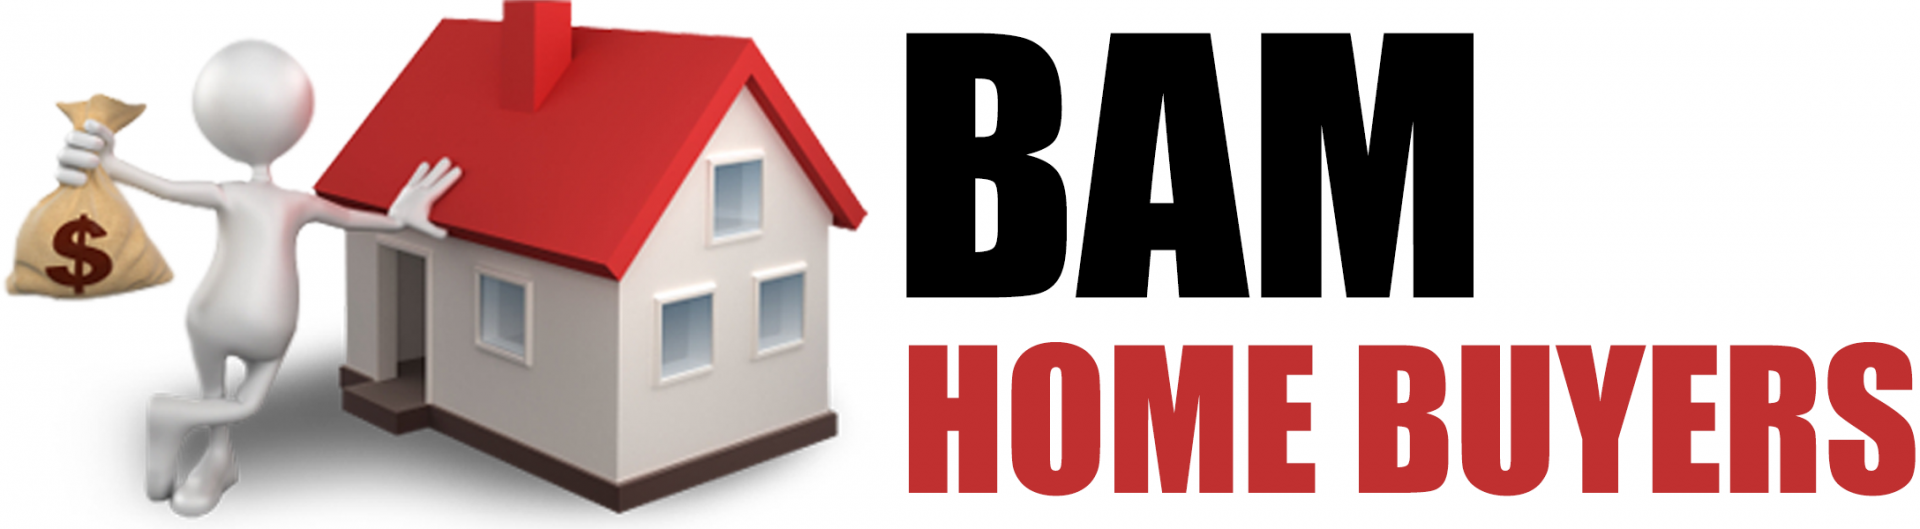 BAM Home Buyers | We Buy Houses Chicago | Sell My House Fast logo